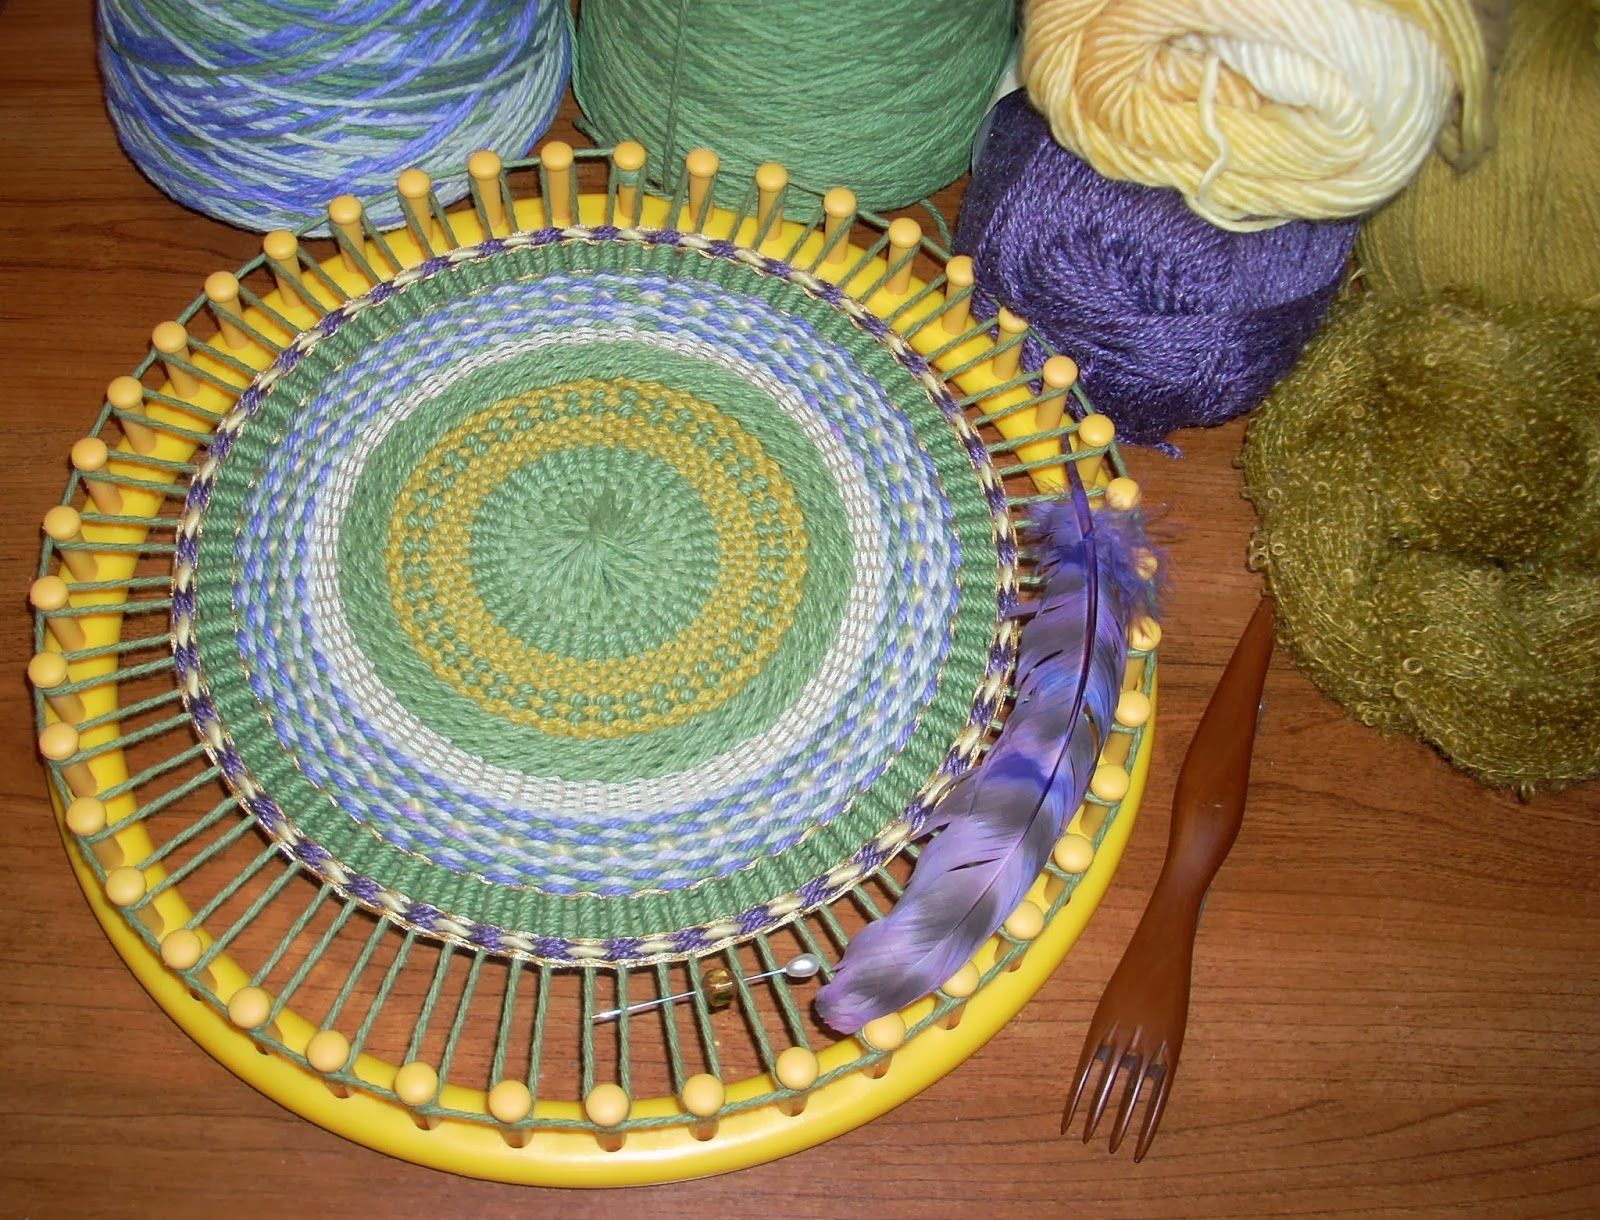 Weaving - Creating a lovely Round Yarn Winter Sampler on a 41 peg ...